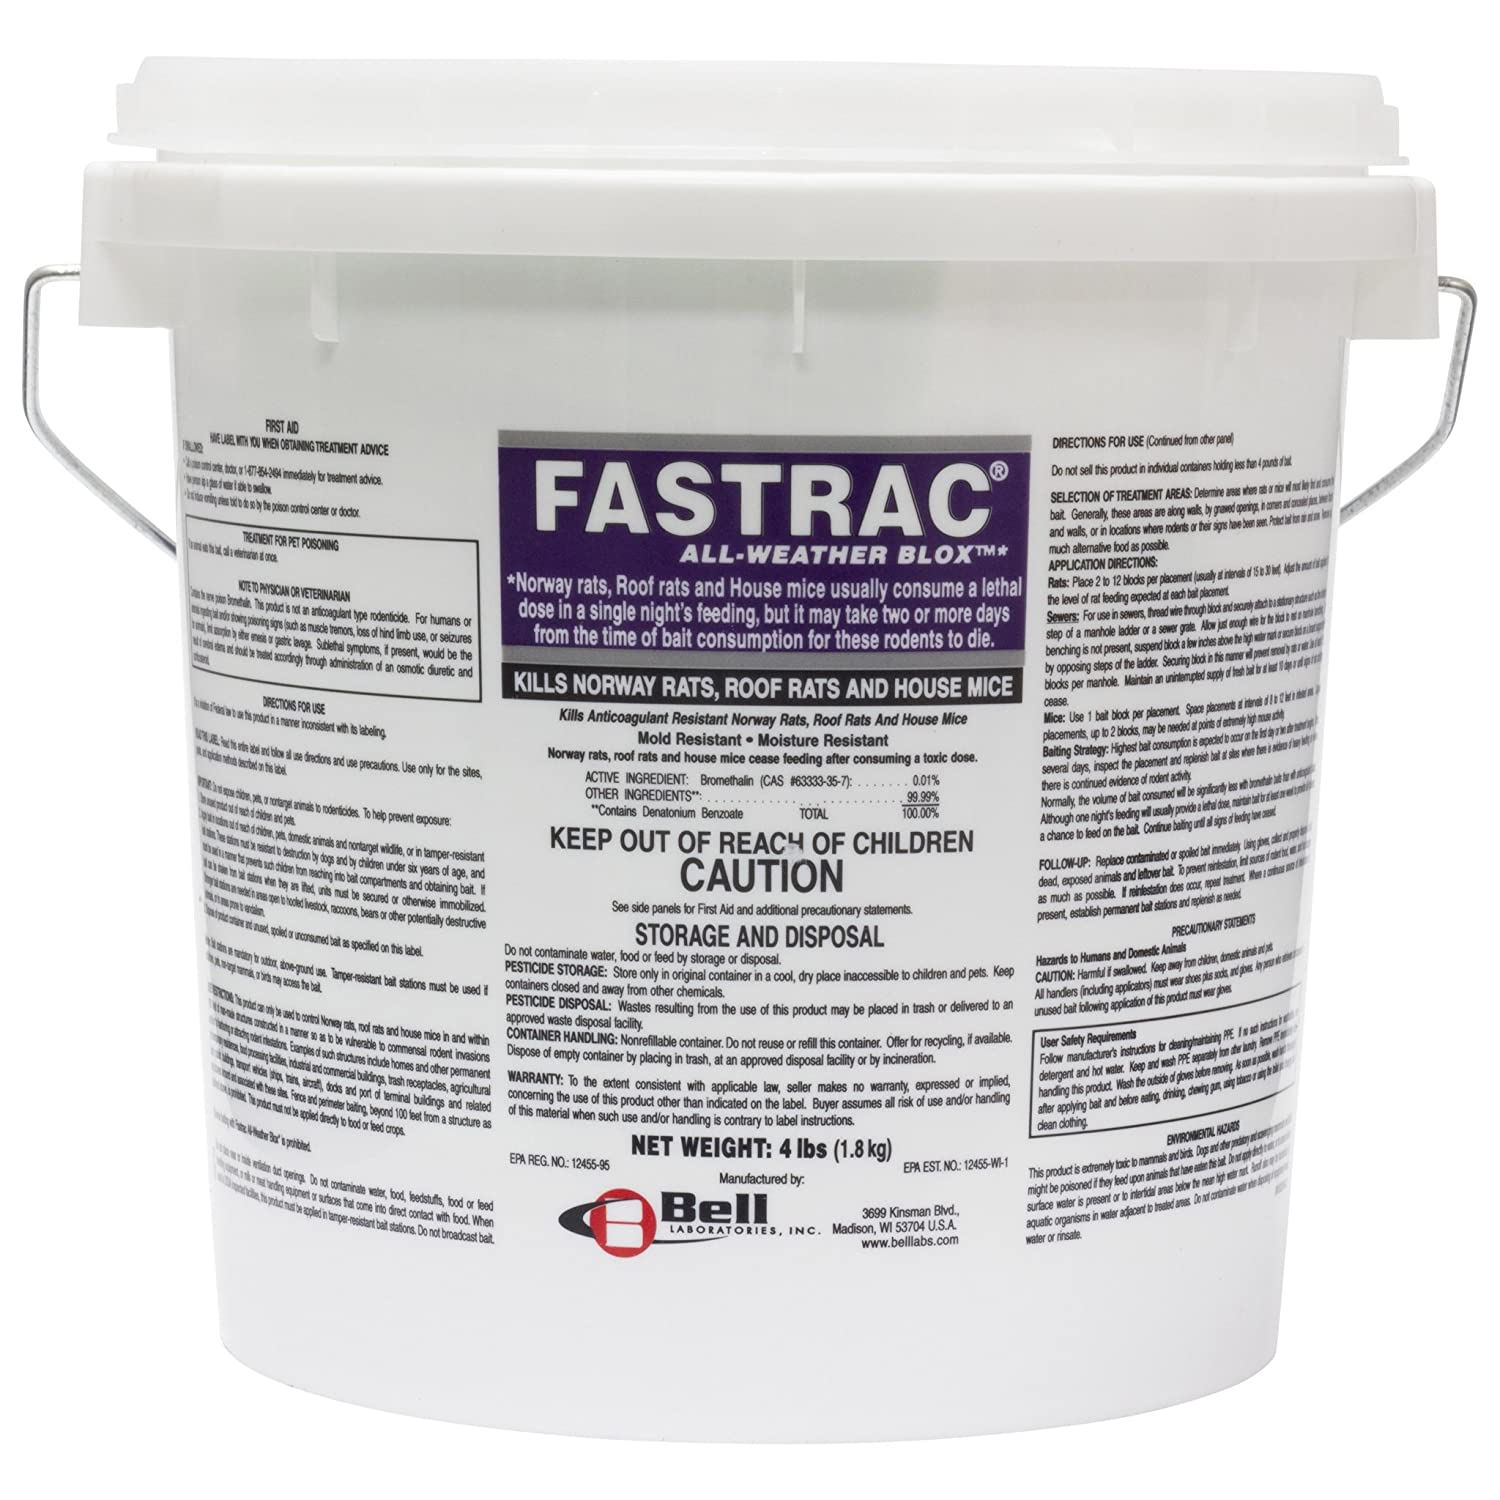 Fasttrac Blox, Fastrac Rodenticide 4lb pail BELL LABS